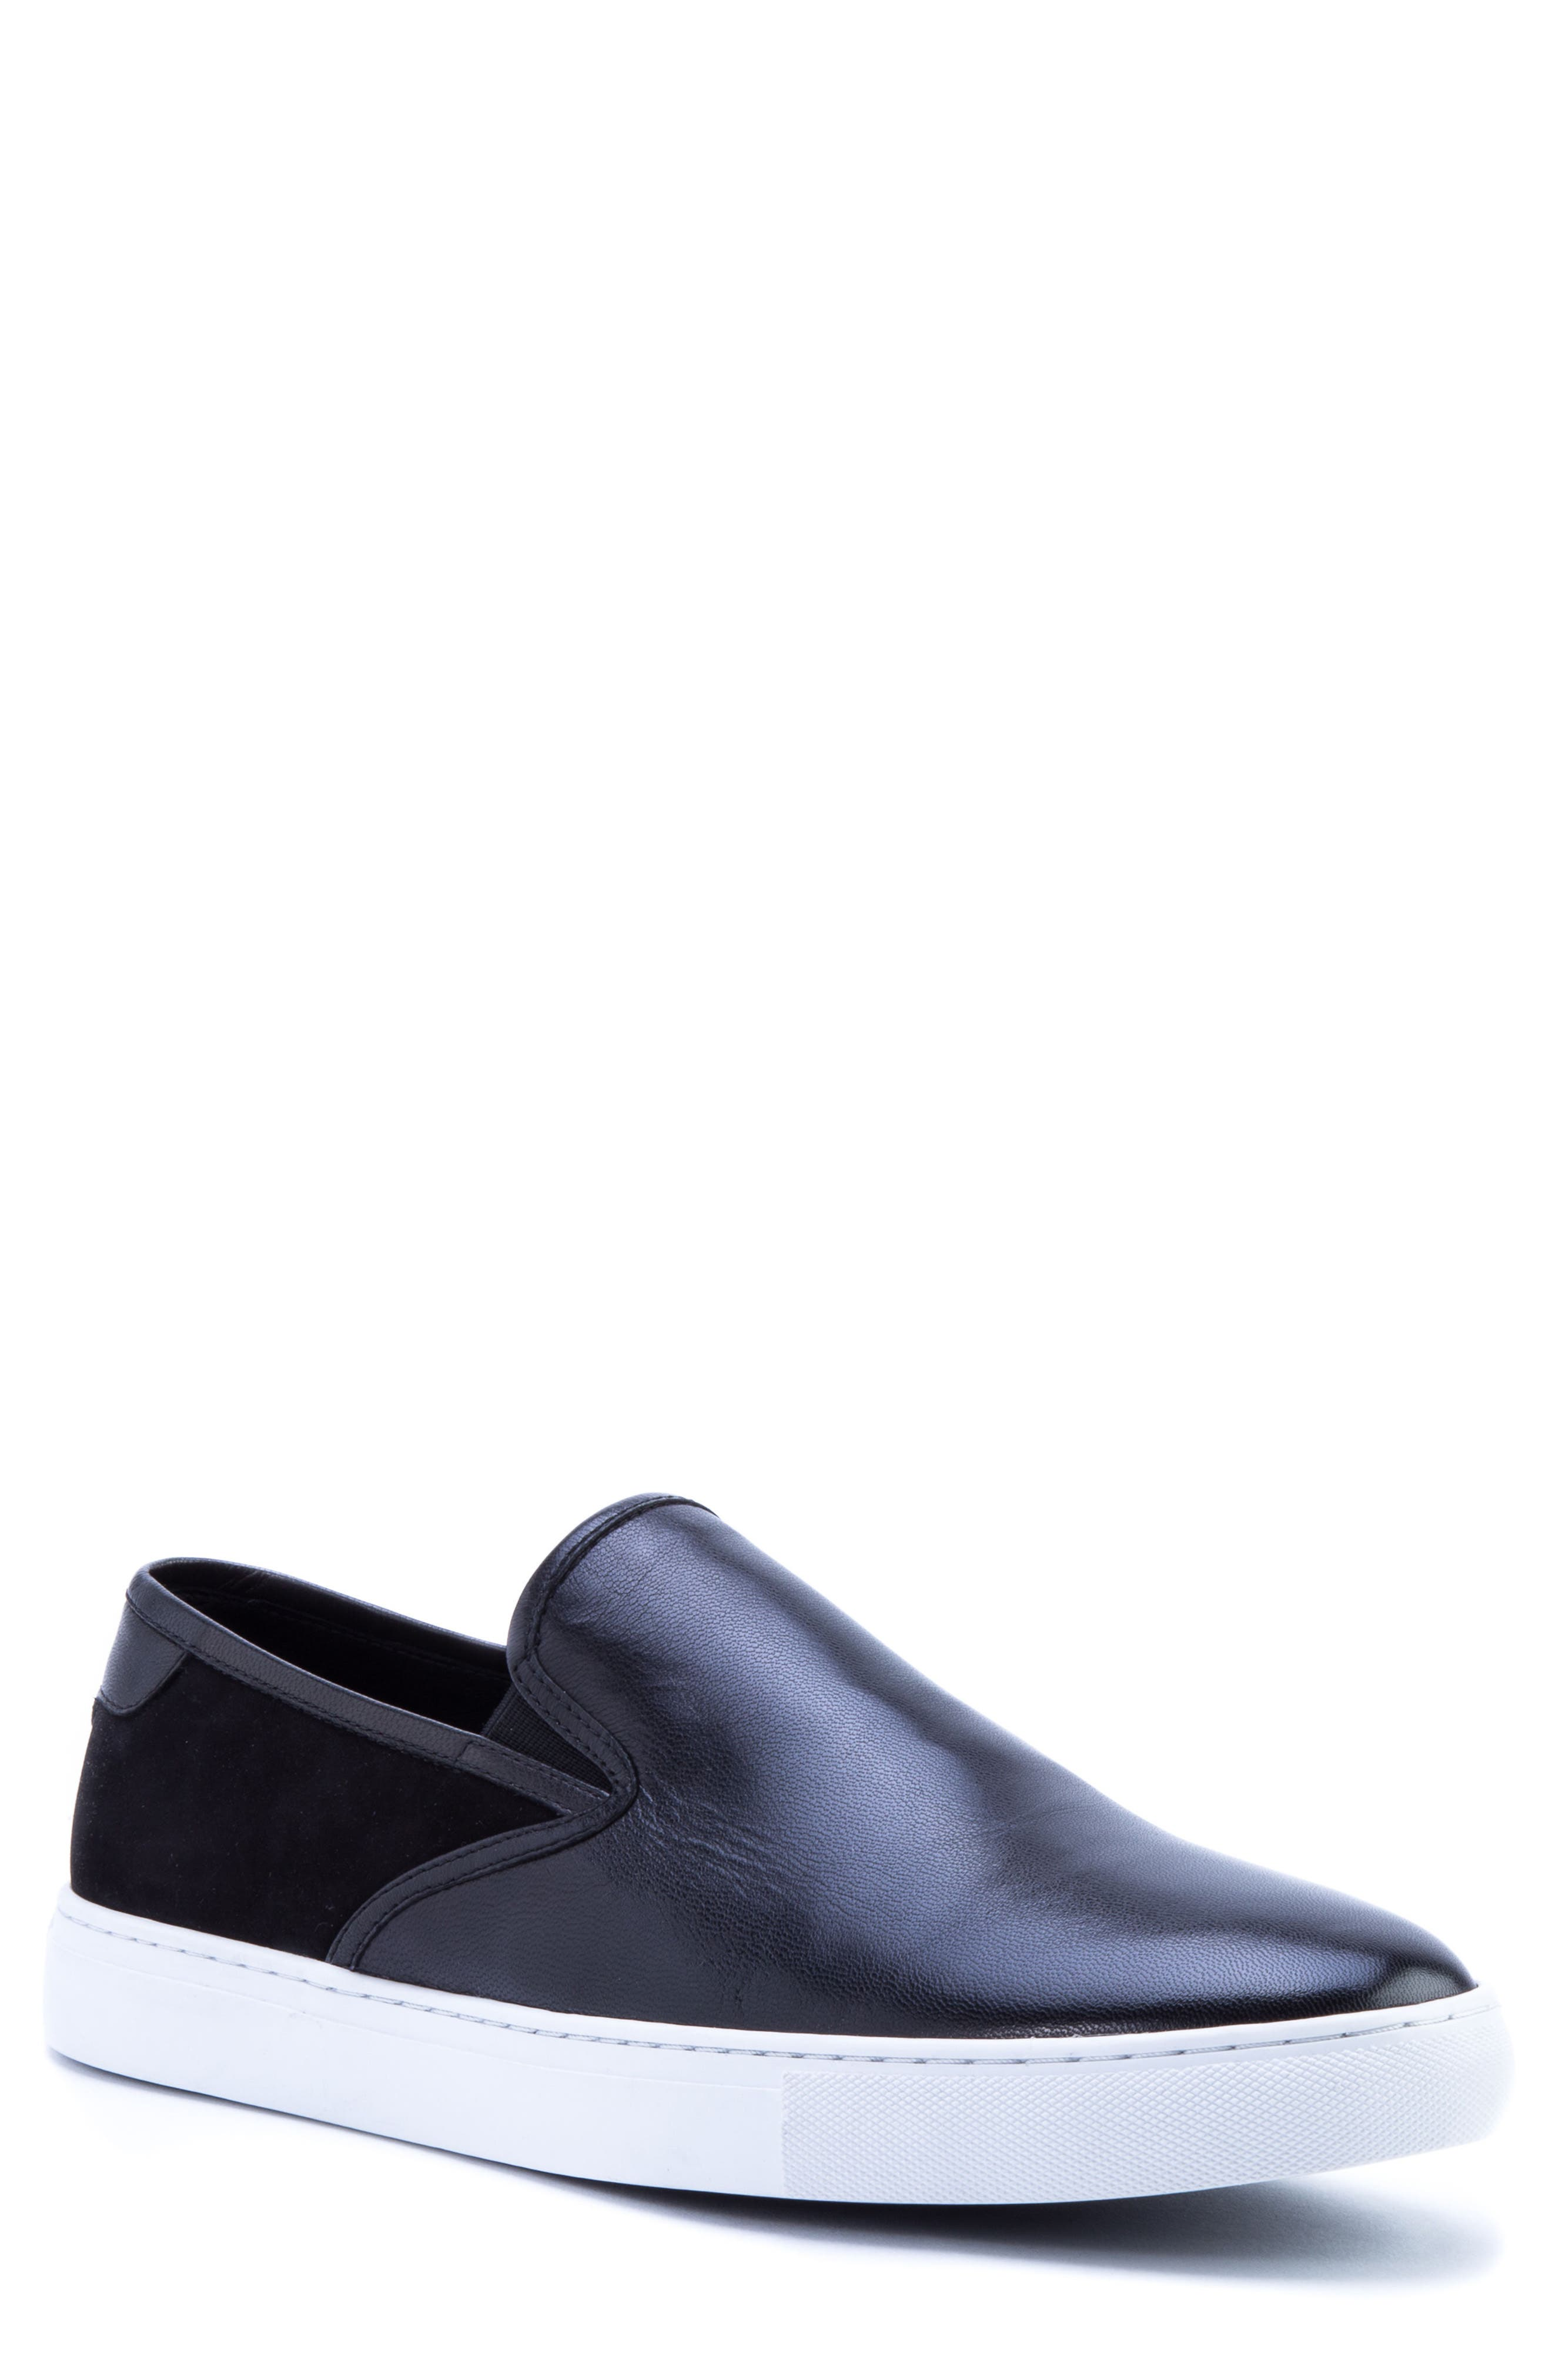 Duchamps Slip-On Sneaker,                         Main,                         color, Black Leather/ Suede